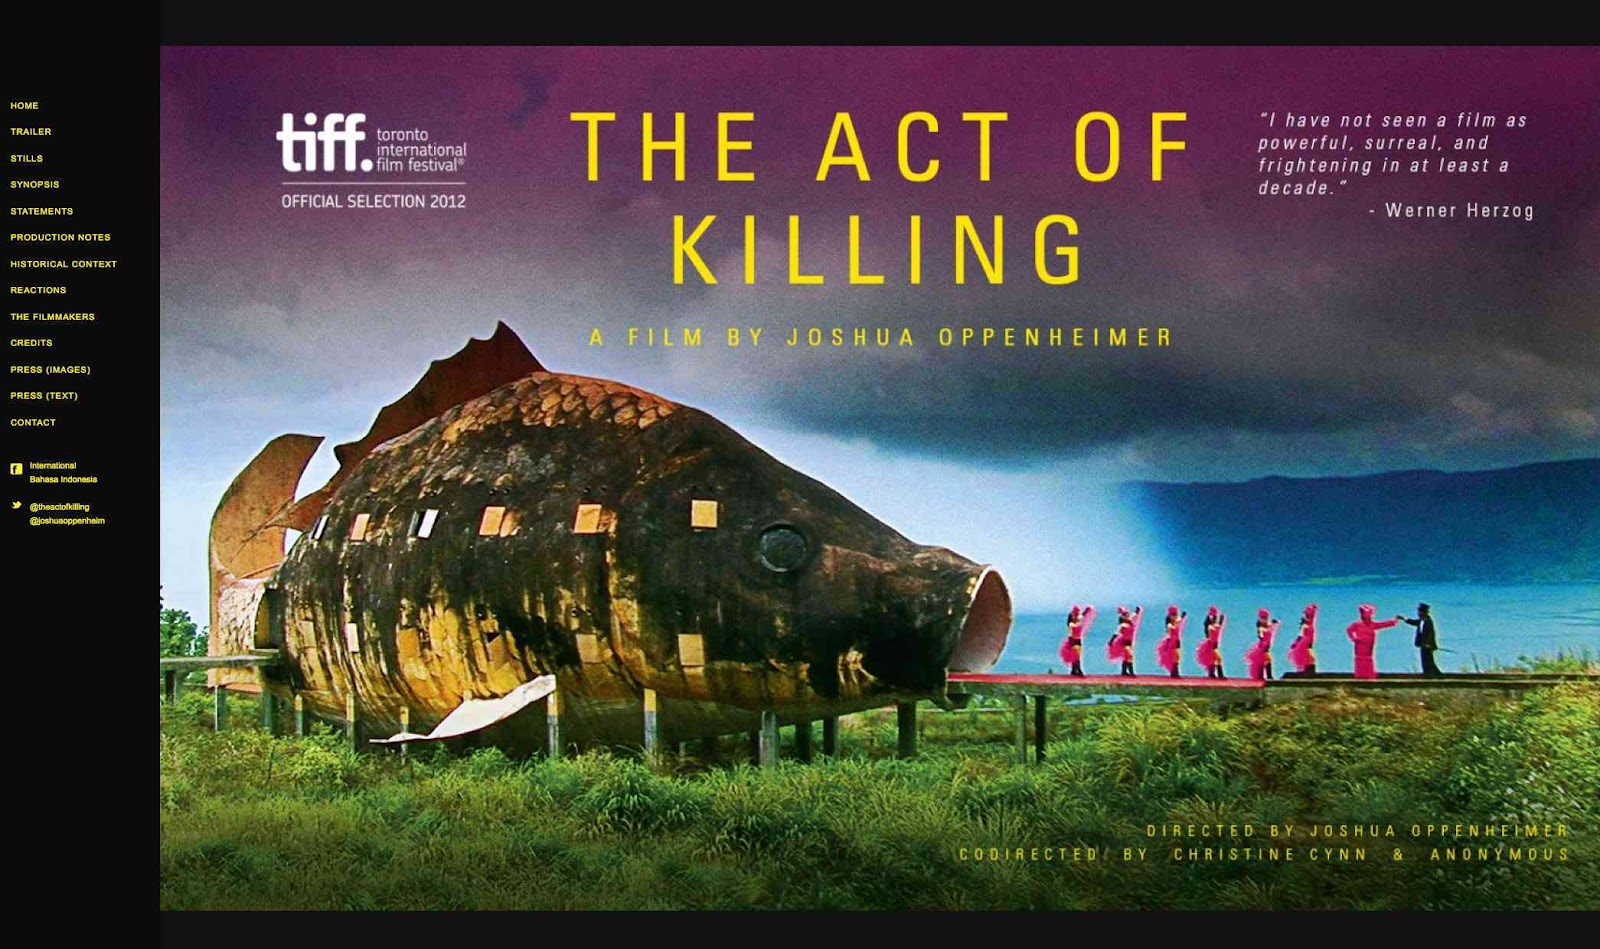 The Act of Killing: The Director's Cut (2012)